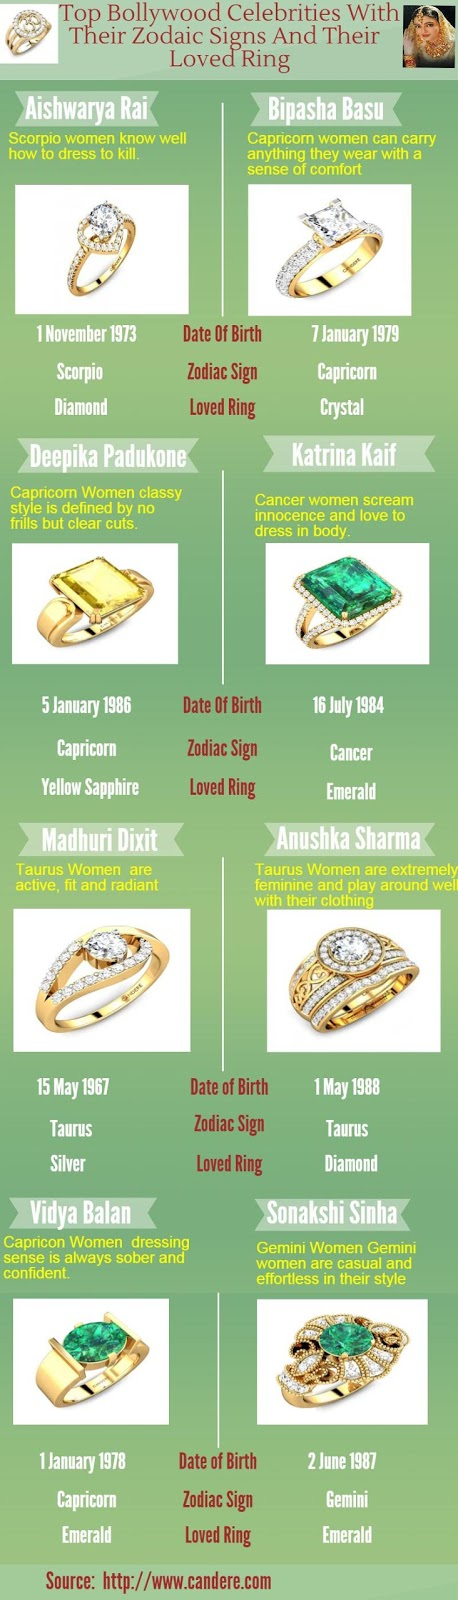 Top Bollywood celebrities with their Zodiac signs and their loved ring, An Infographic